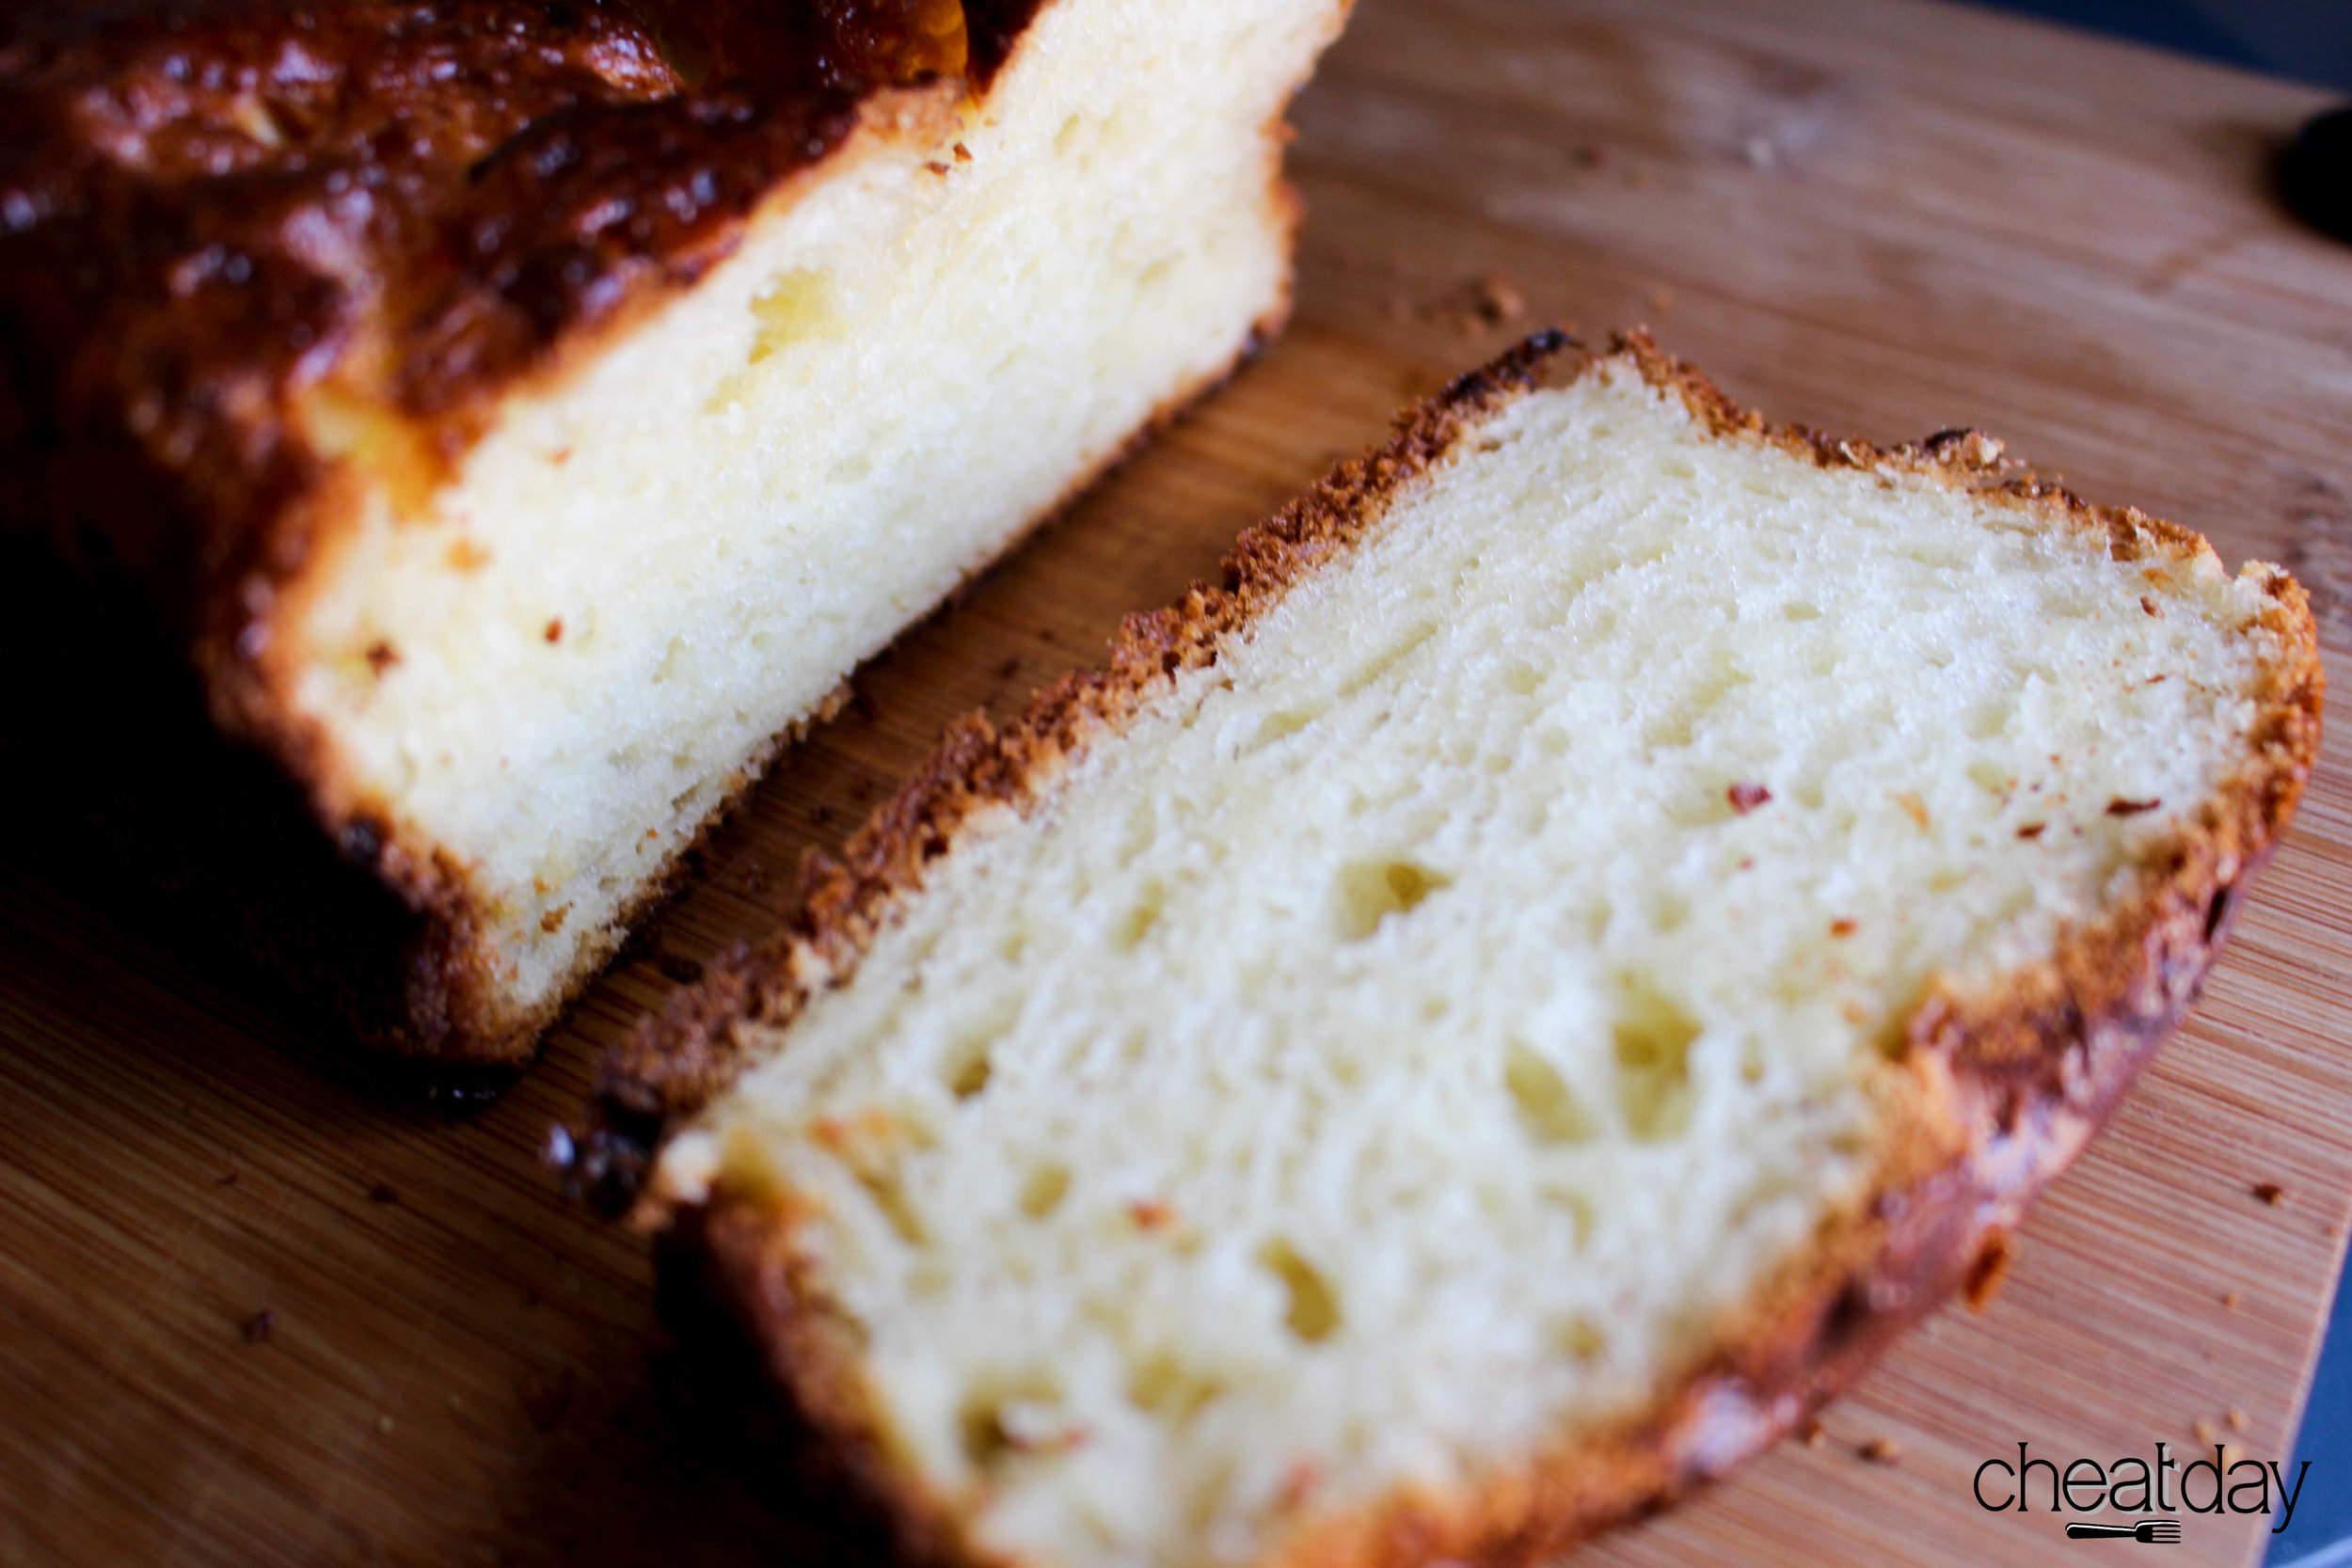 Look at those air pockets. It's so soft and butter with just the right amount of sweetness brioche lends! Take me back!